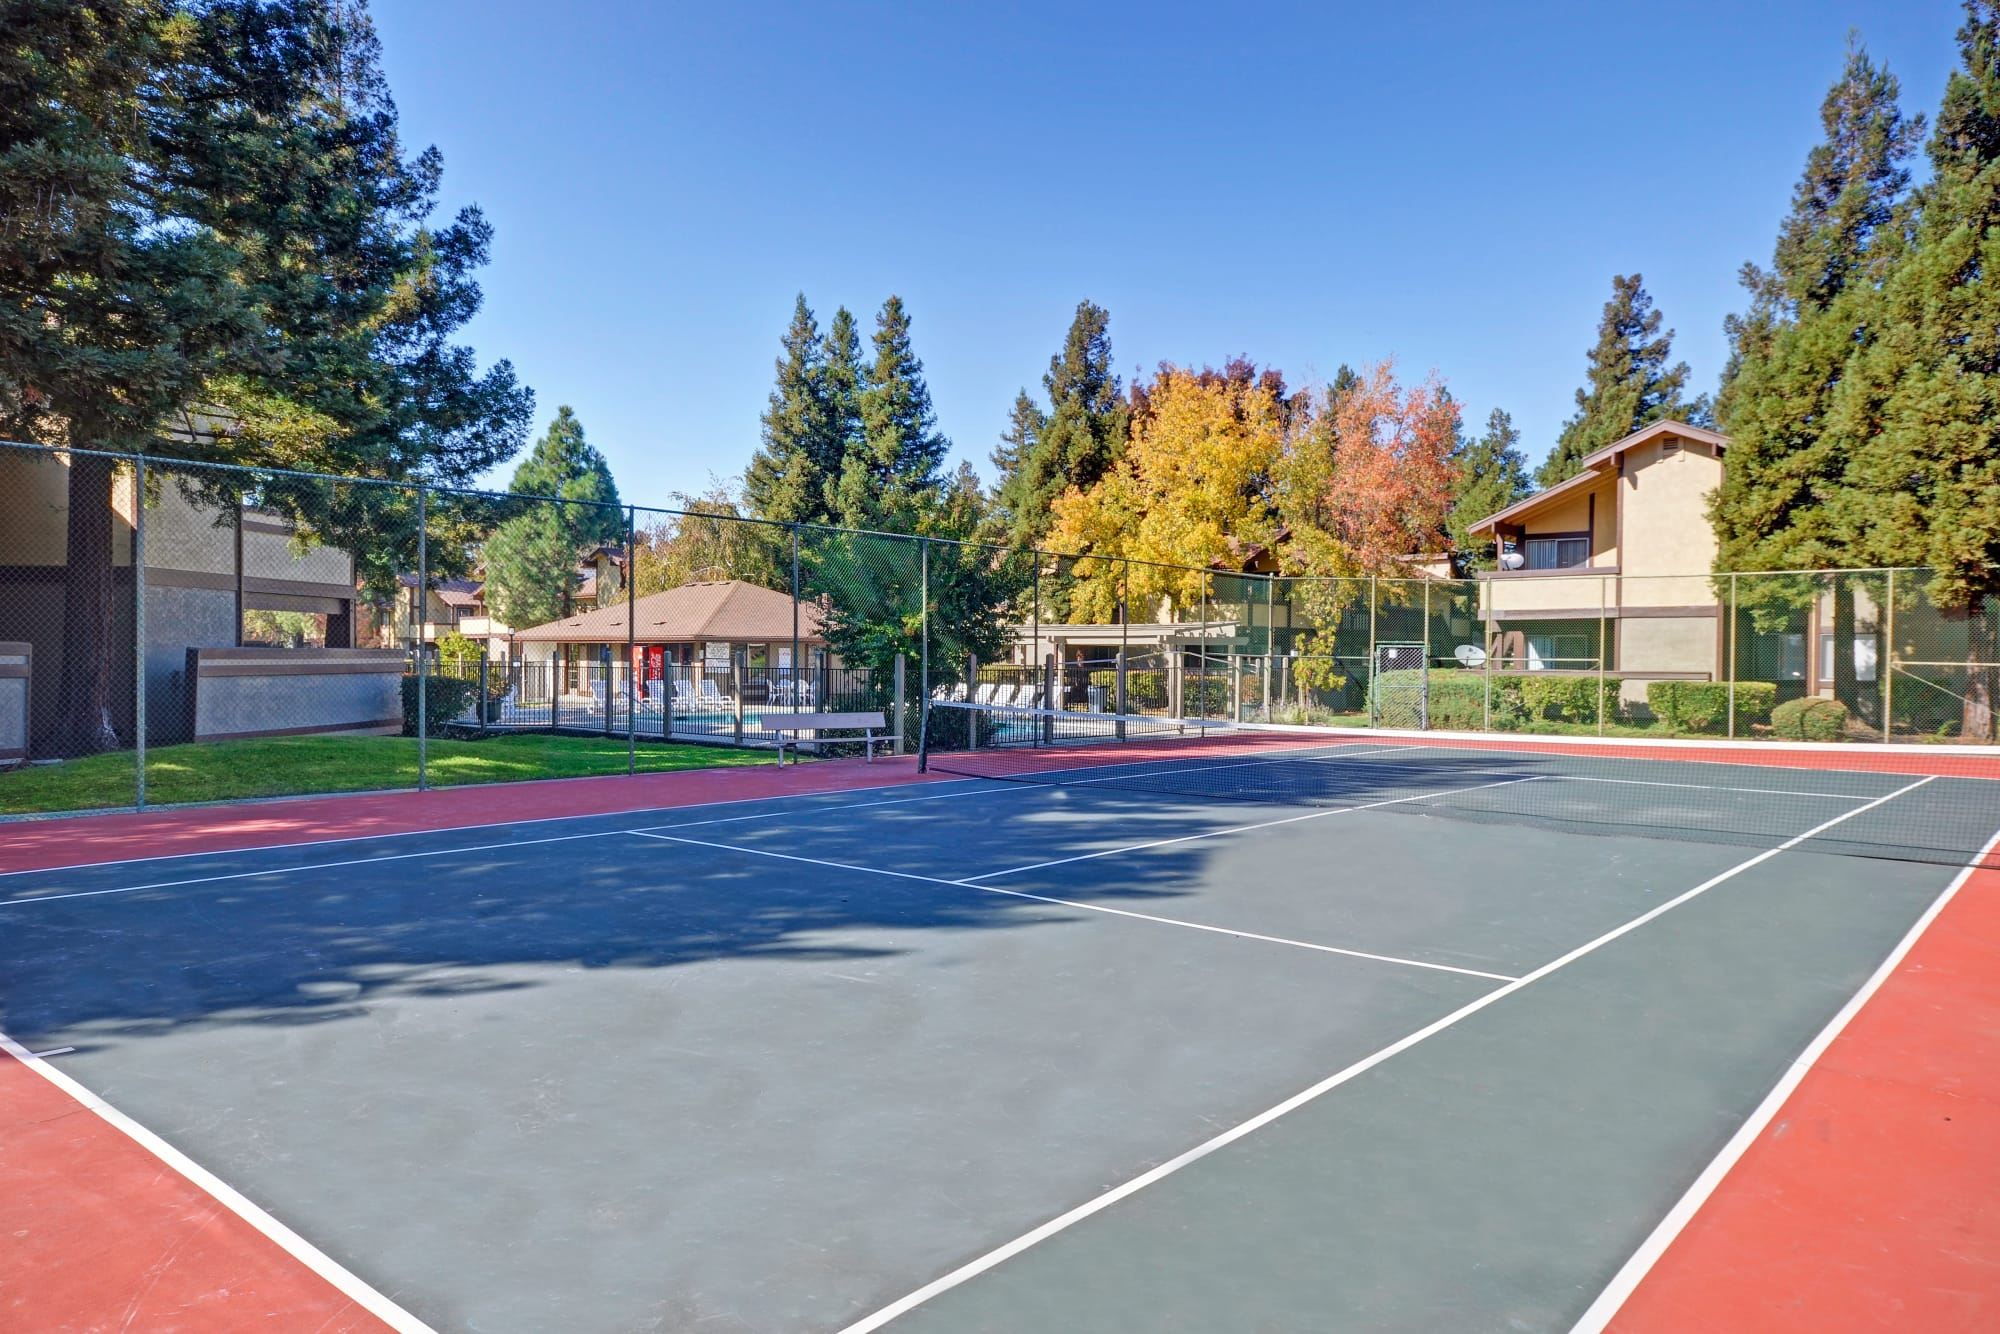 An onsite tennis court at Avery Park Apartments in Fairfield, California